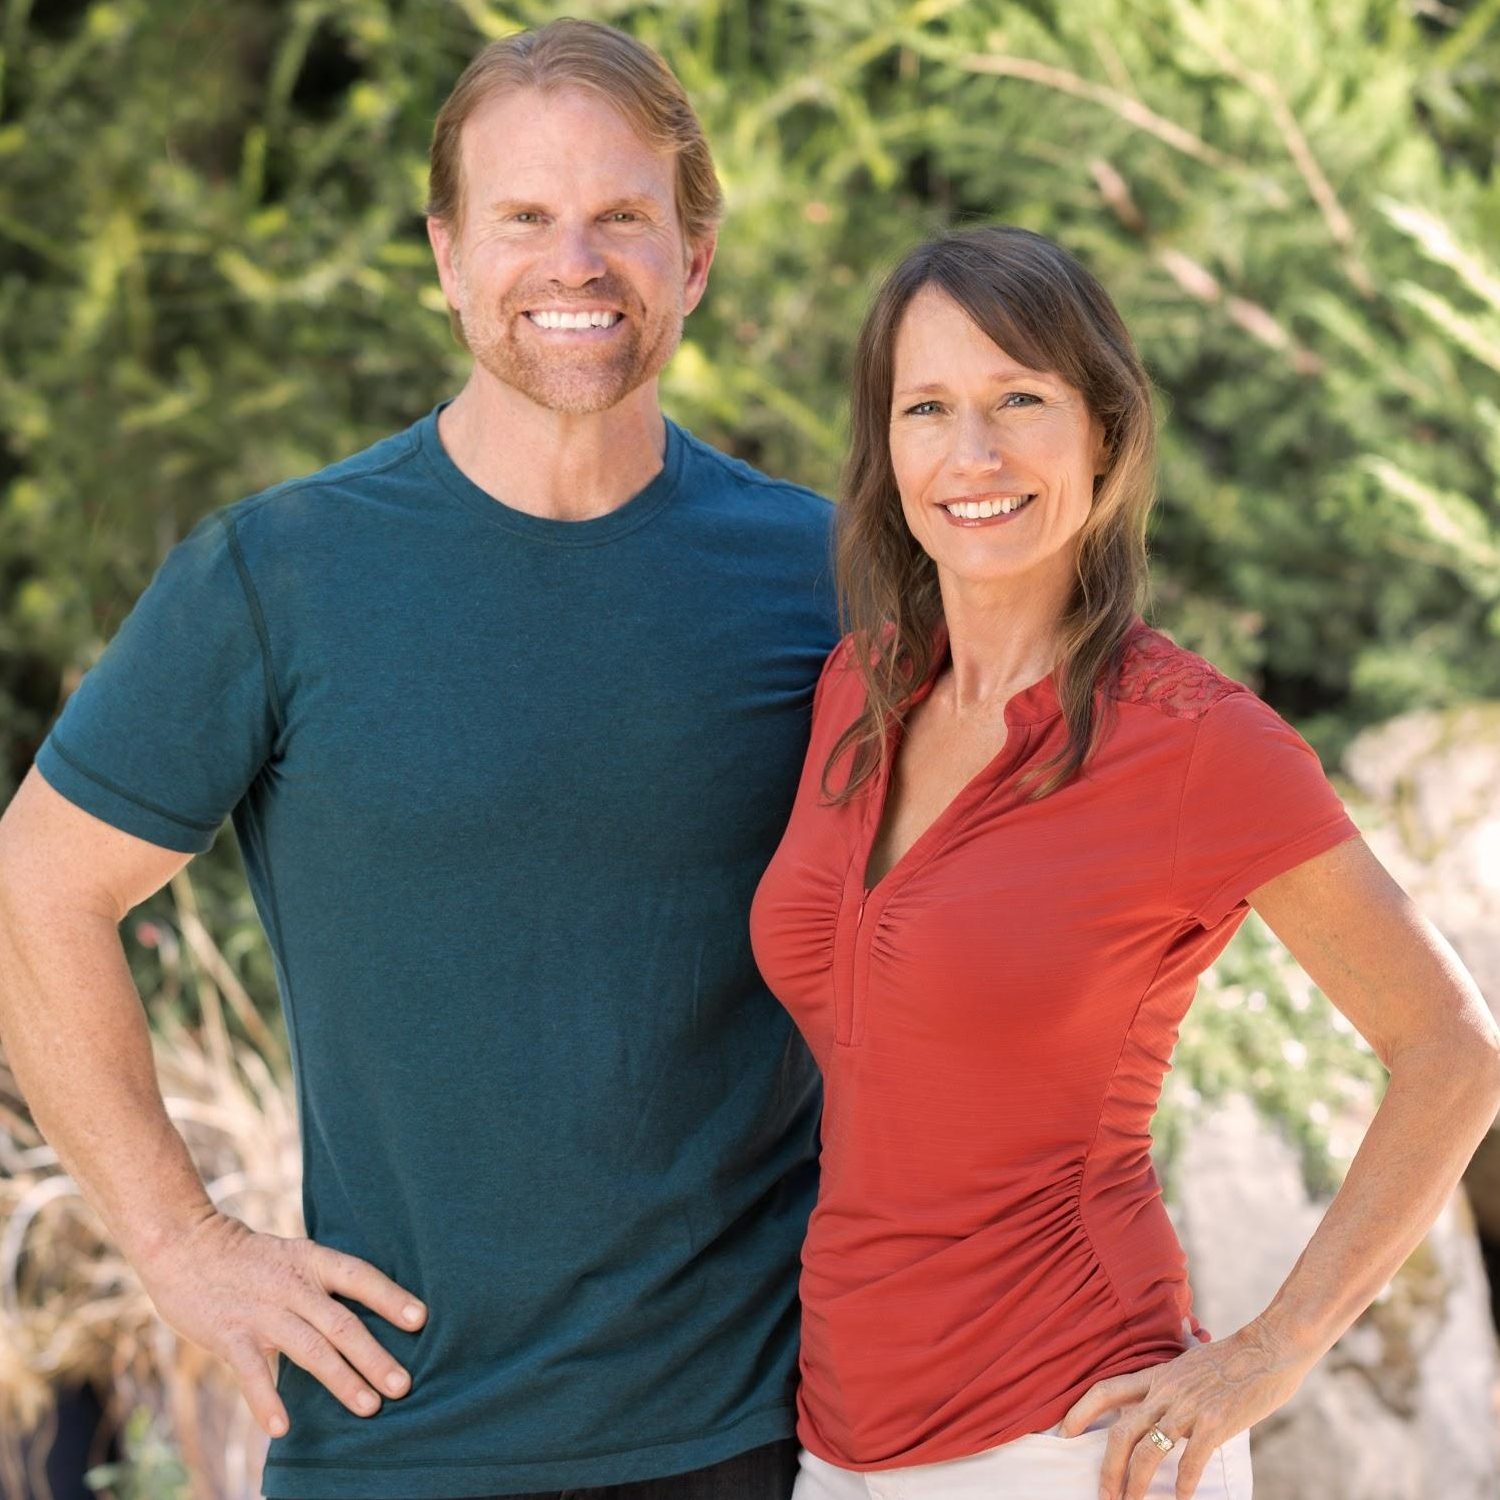 Rich & Kathy Fettke - texas real estate market - tips from the pros